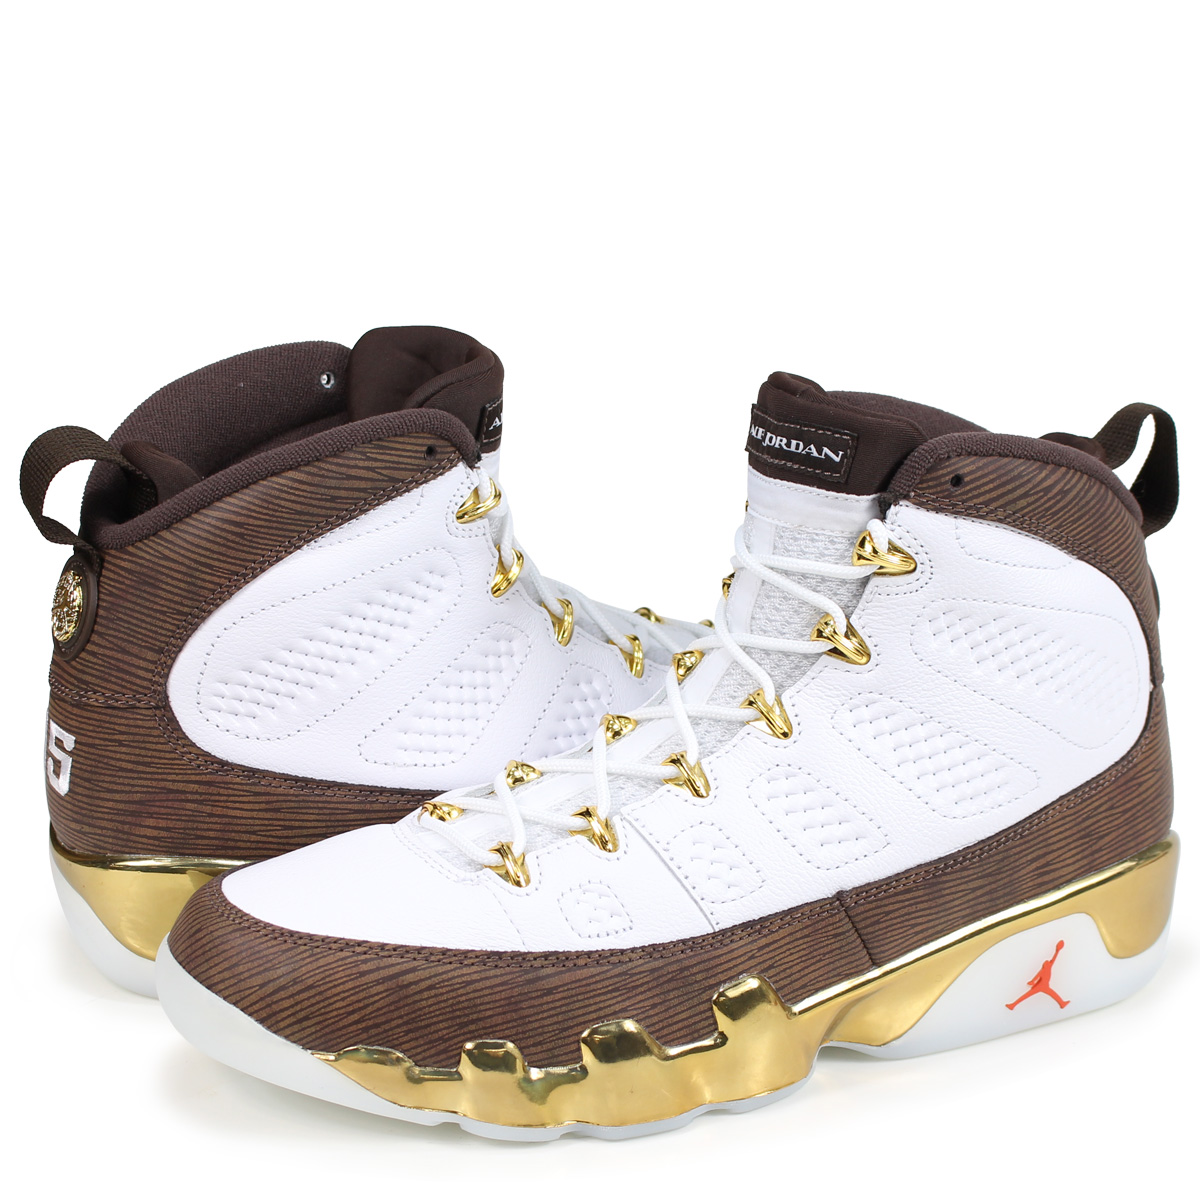 34928767ffaf NIKE AIR JORDAN 9 RETRO MOP MELO Nike Air Jordan 9 nostalgic sneakers men  302